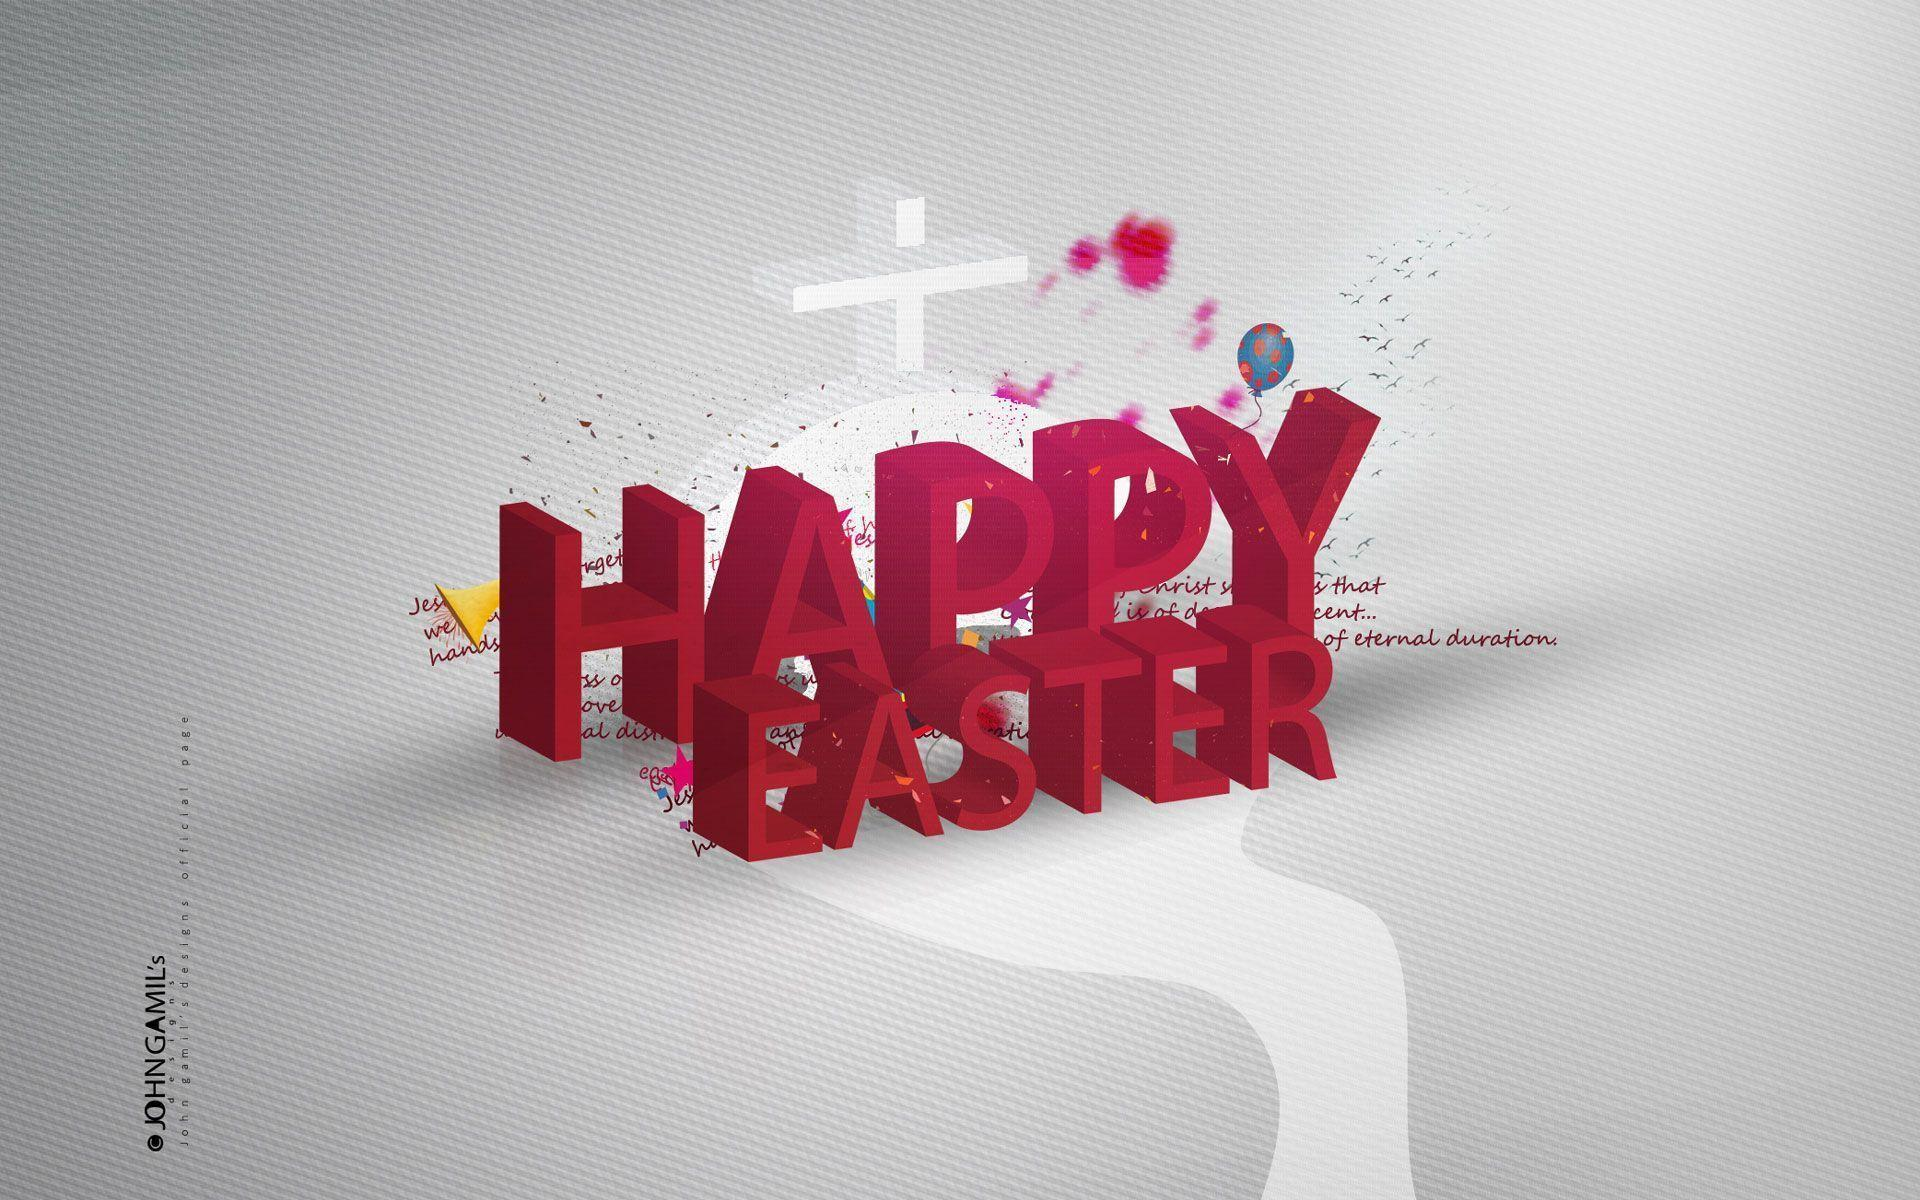 Happy Easter Wallpapers For Phone Mobile Wallpapers